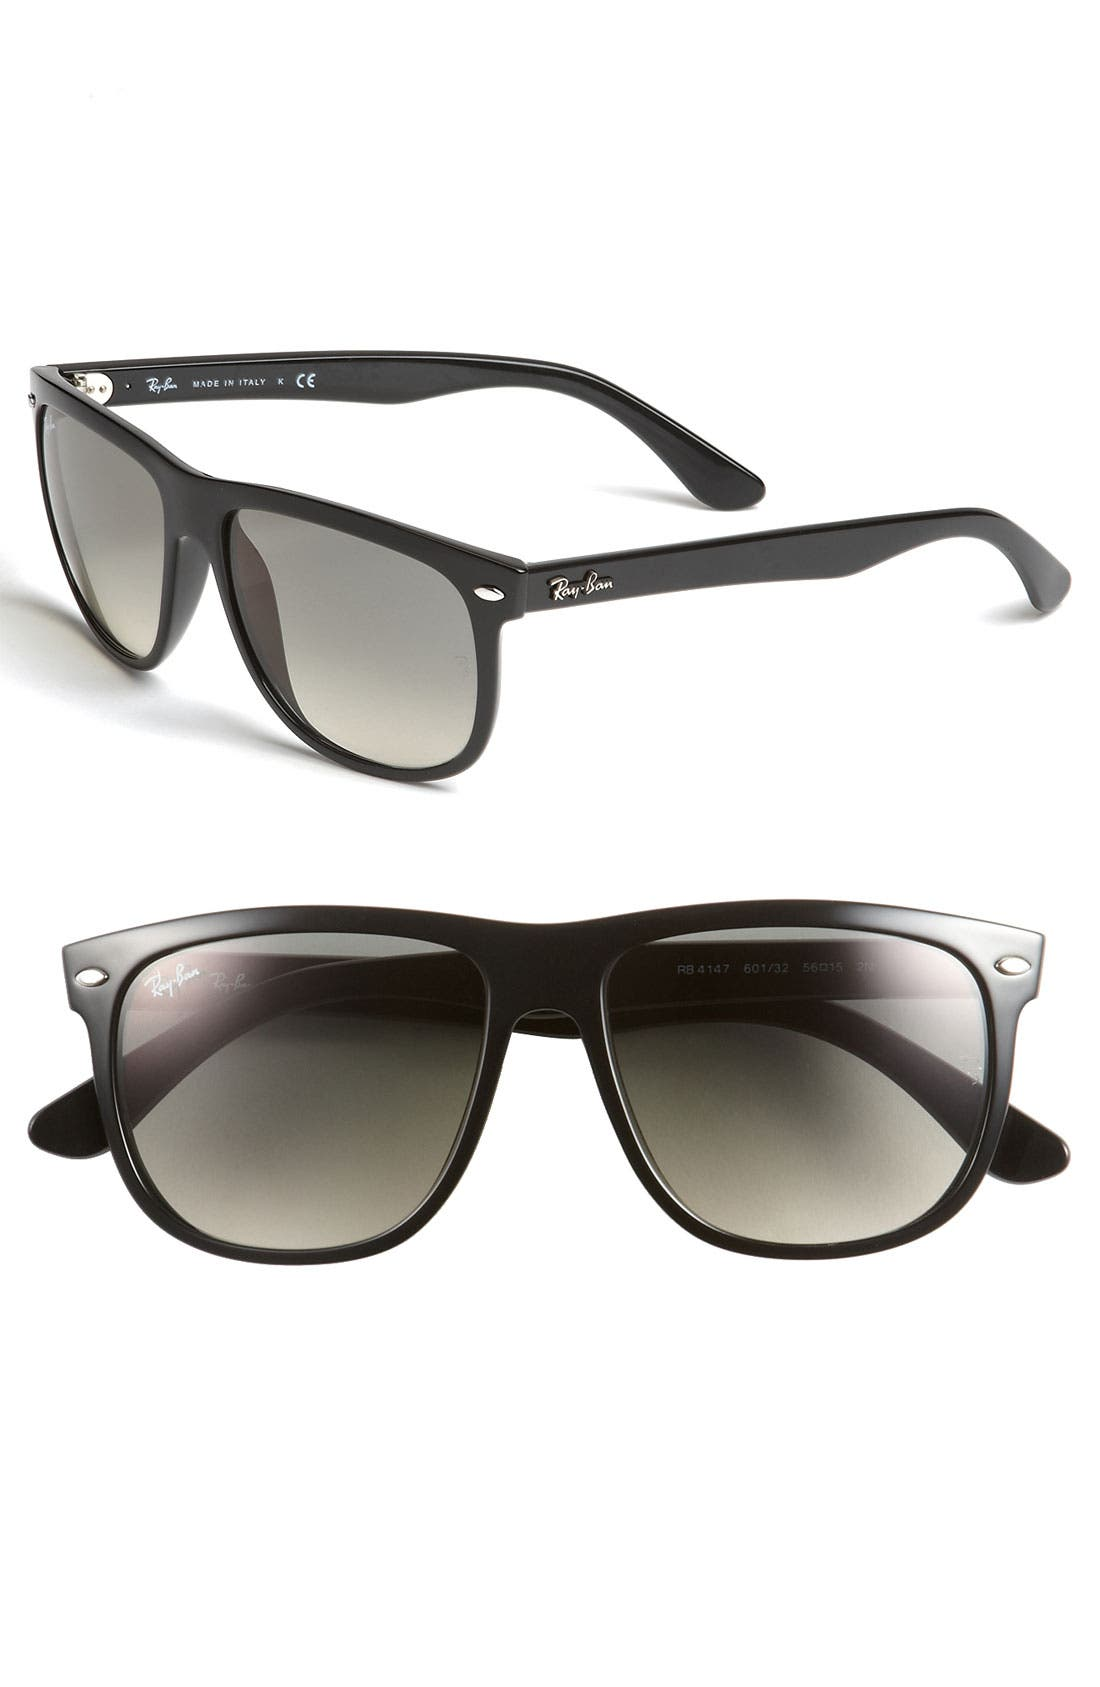 Main Image - Ray-Ban 'Boyfriend Flat Top Frame' 56mm Sunglasses